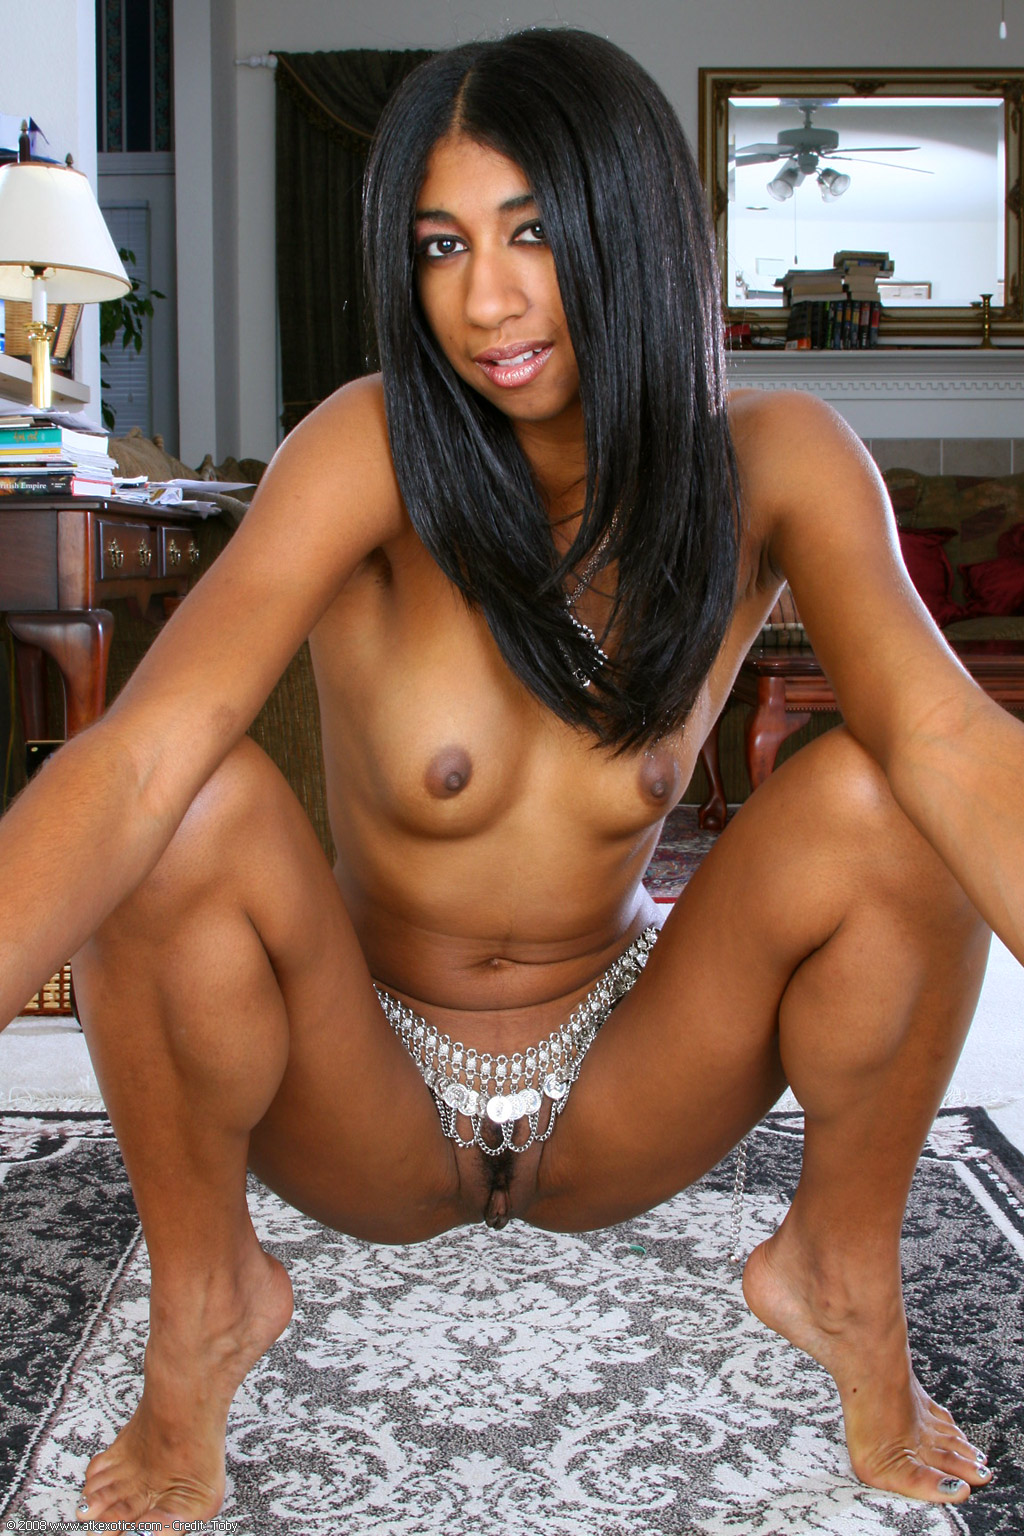 Ebony Sexy Hot Girls